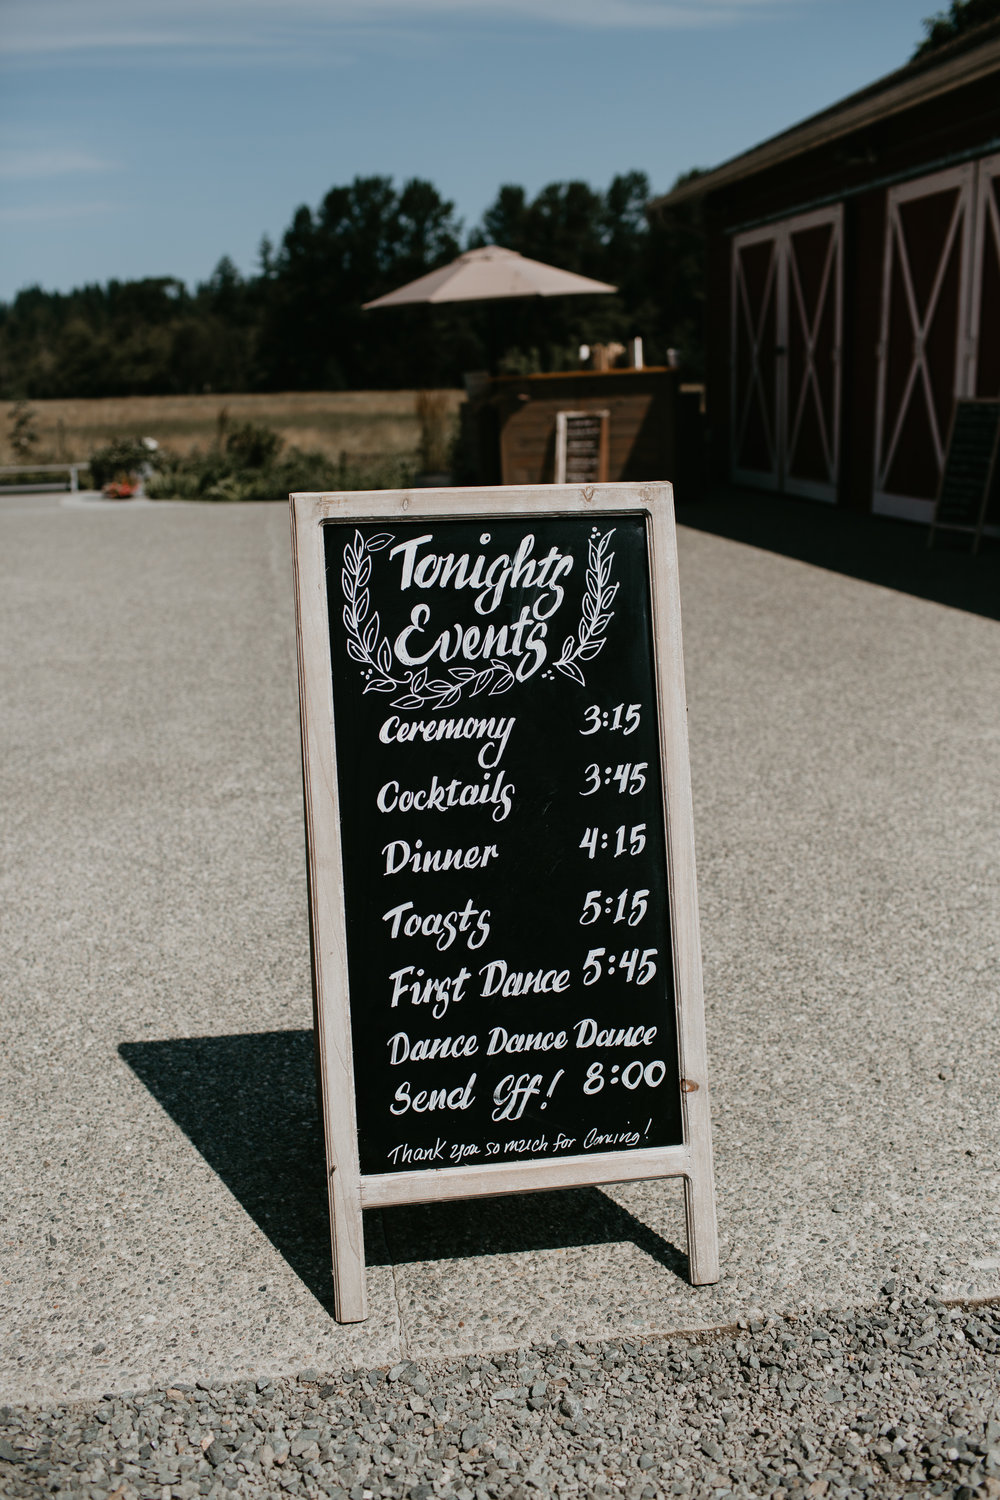 nicole-daacke-photography-washington-summer-wedding-at-marionfield-farm-pacific-northwest-adventure-wedding-photographer-2.jpg